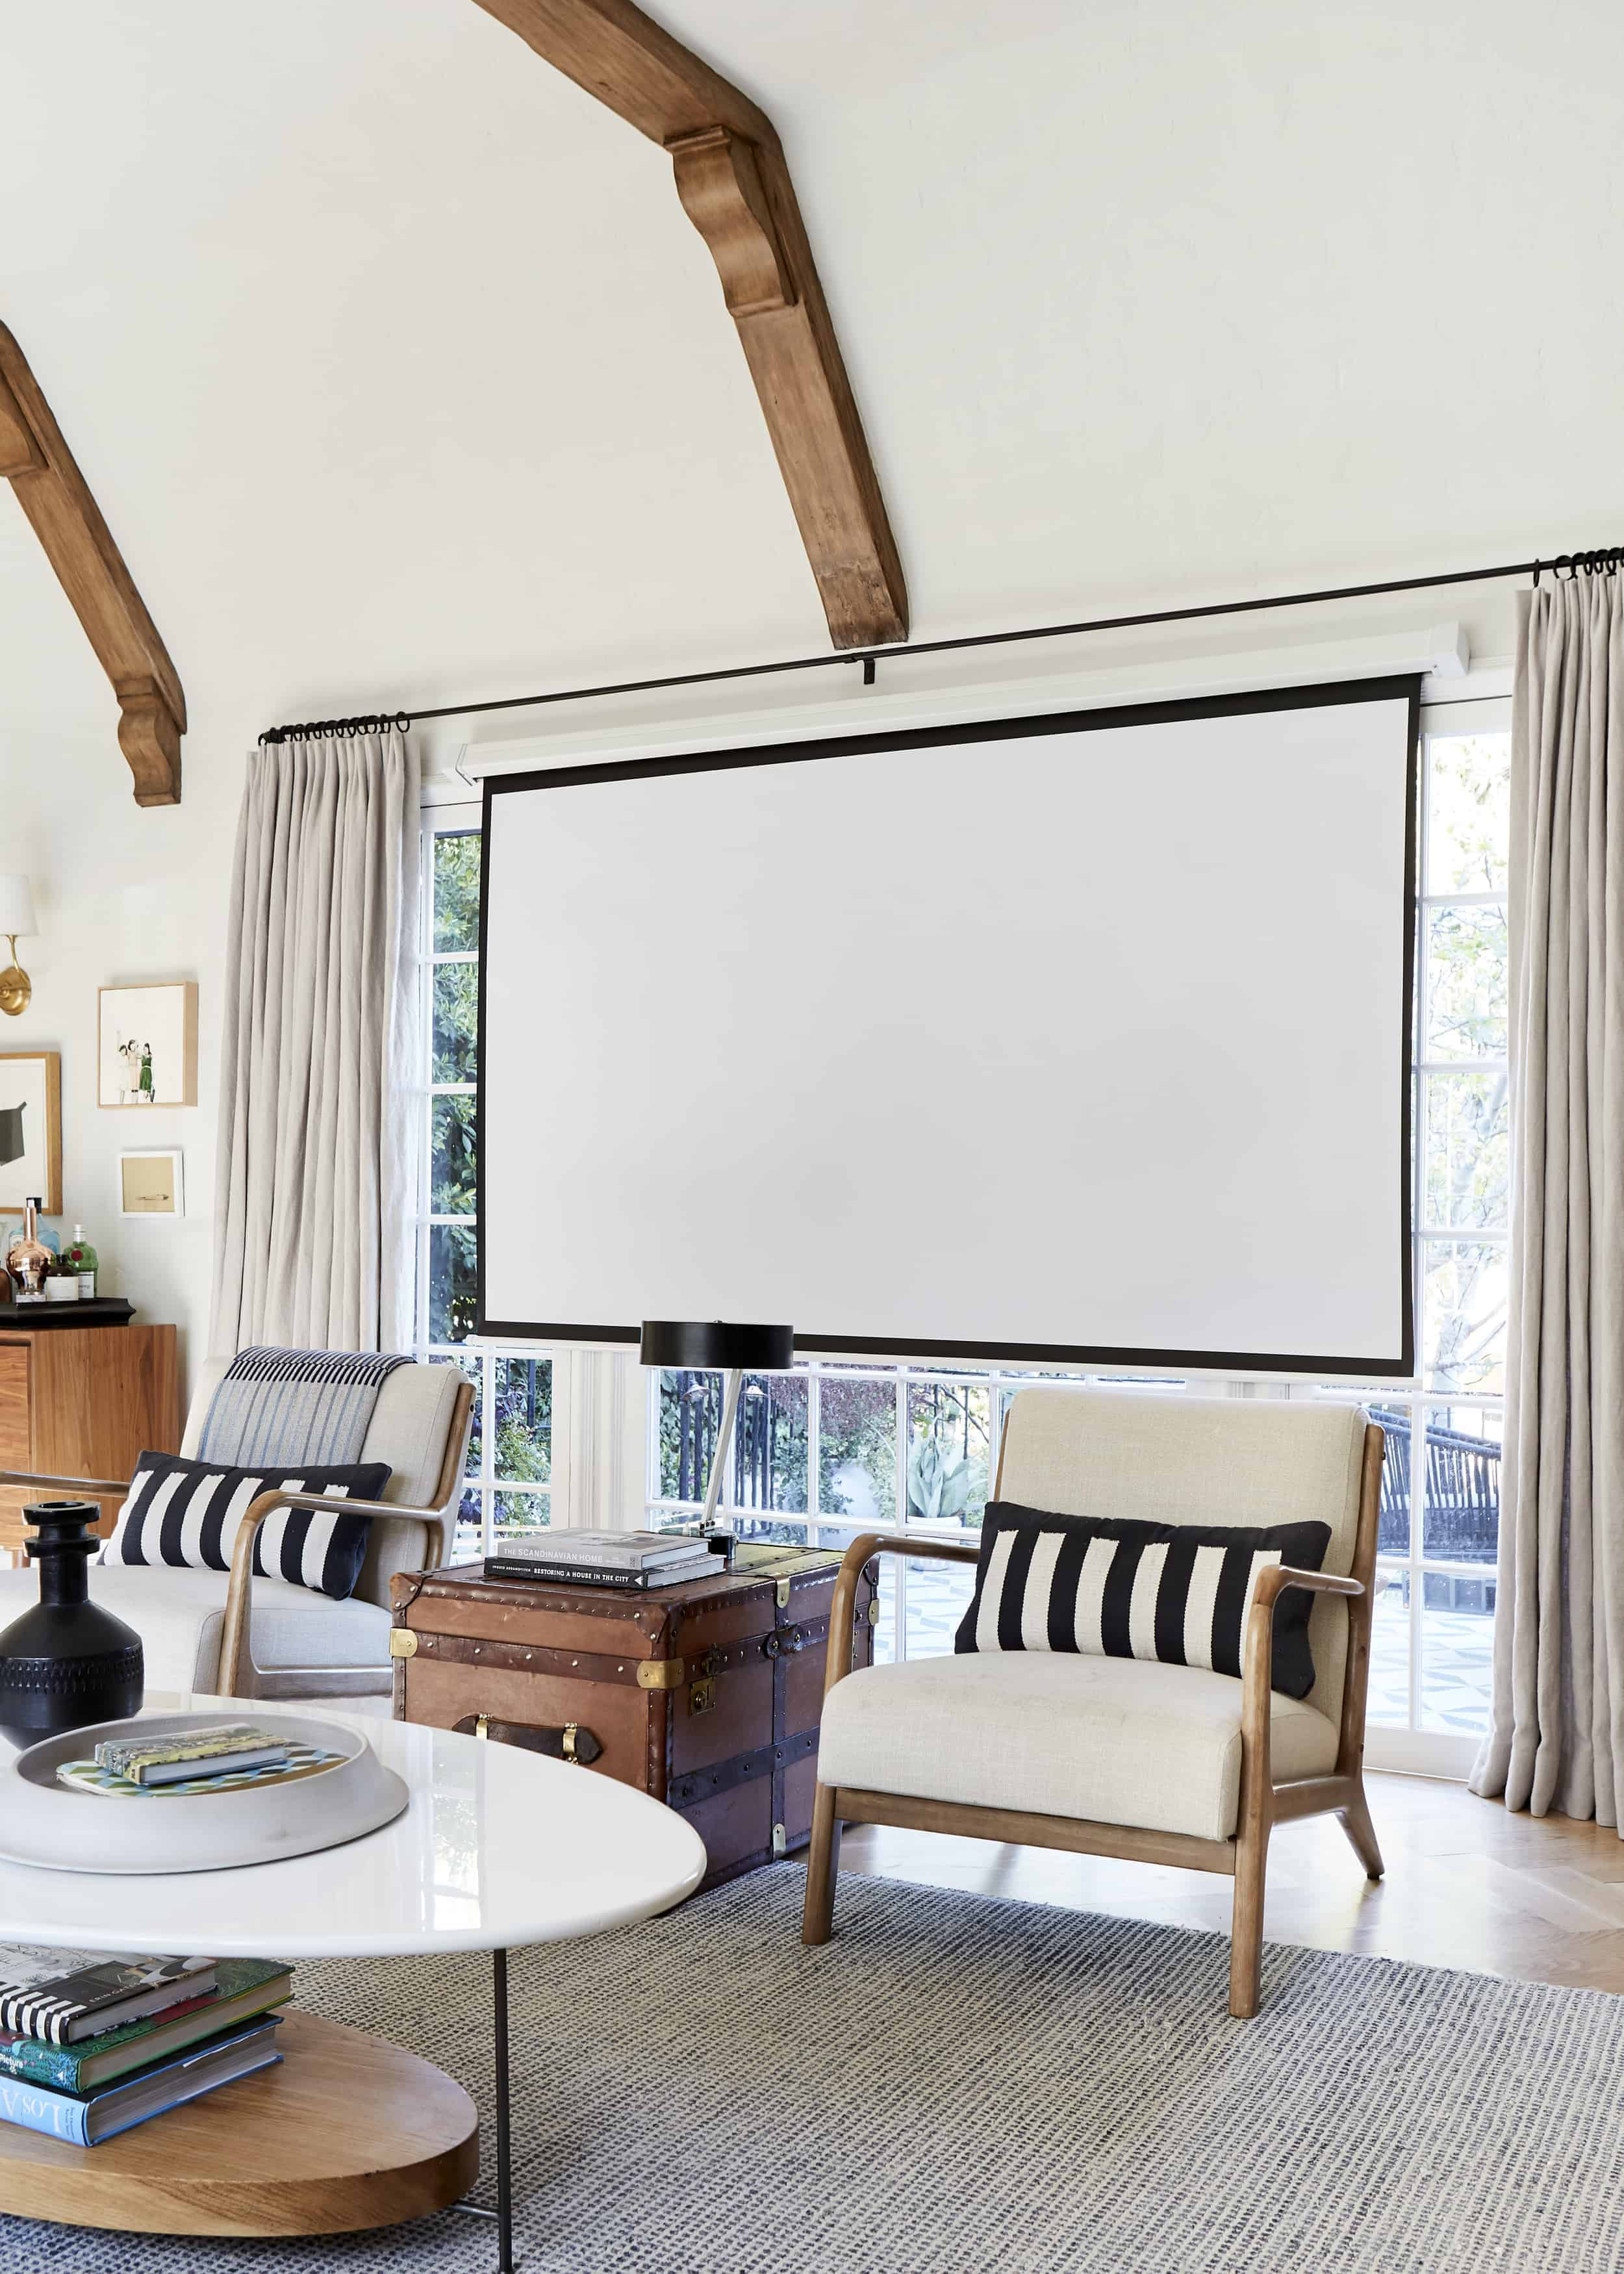 At Home Pull Down Projector Screen